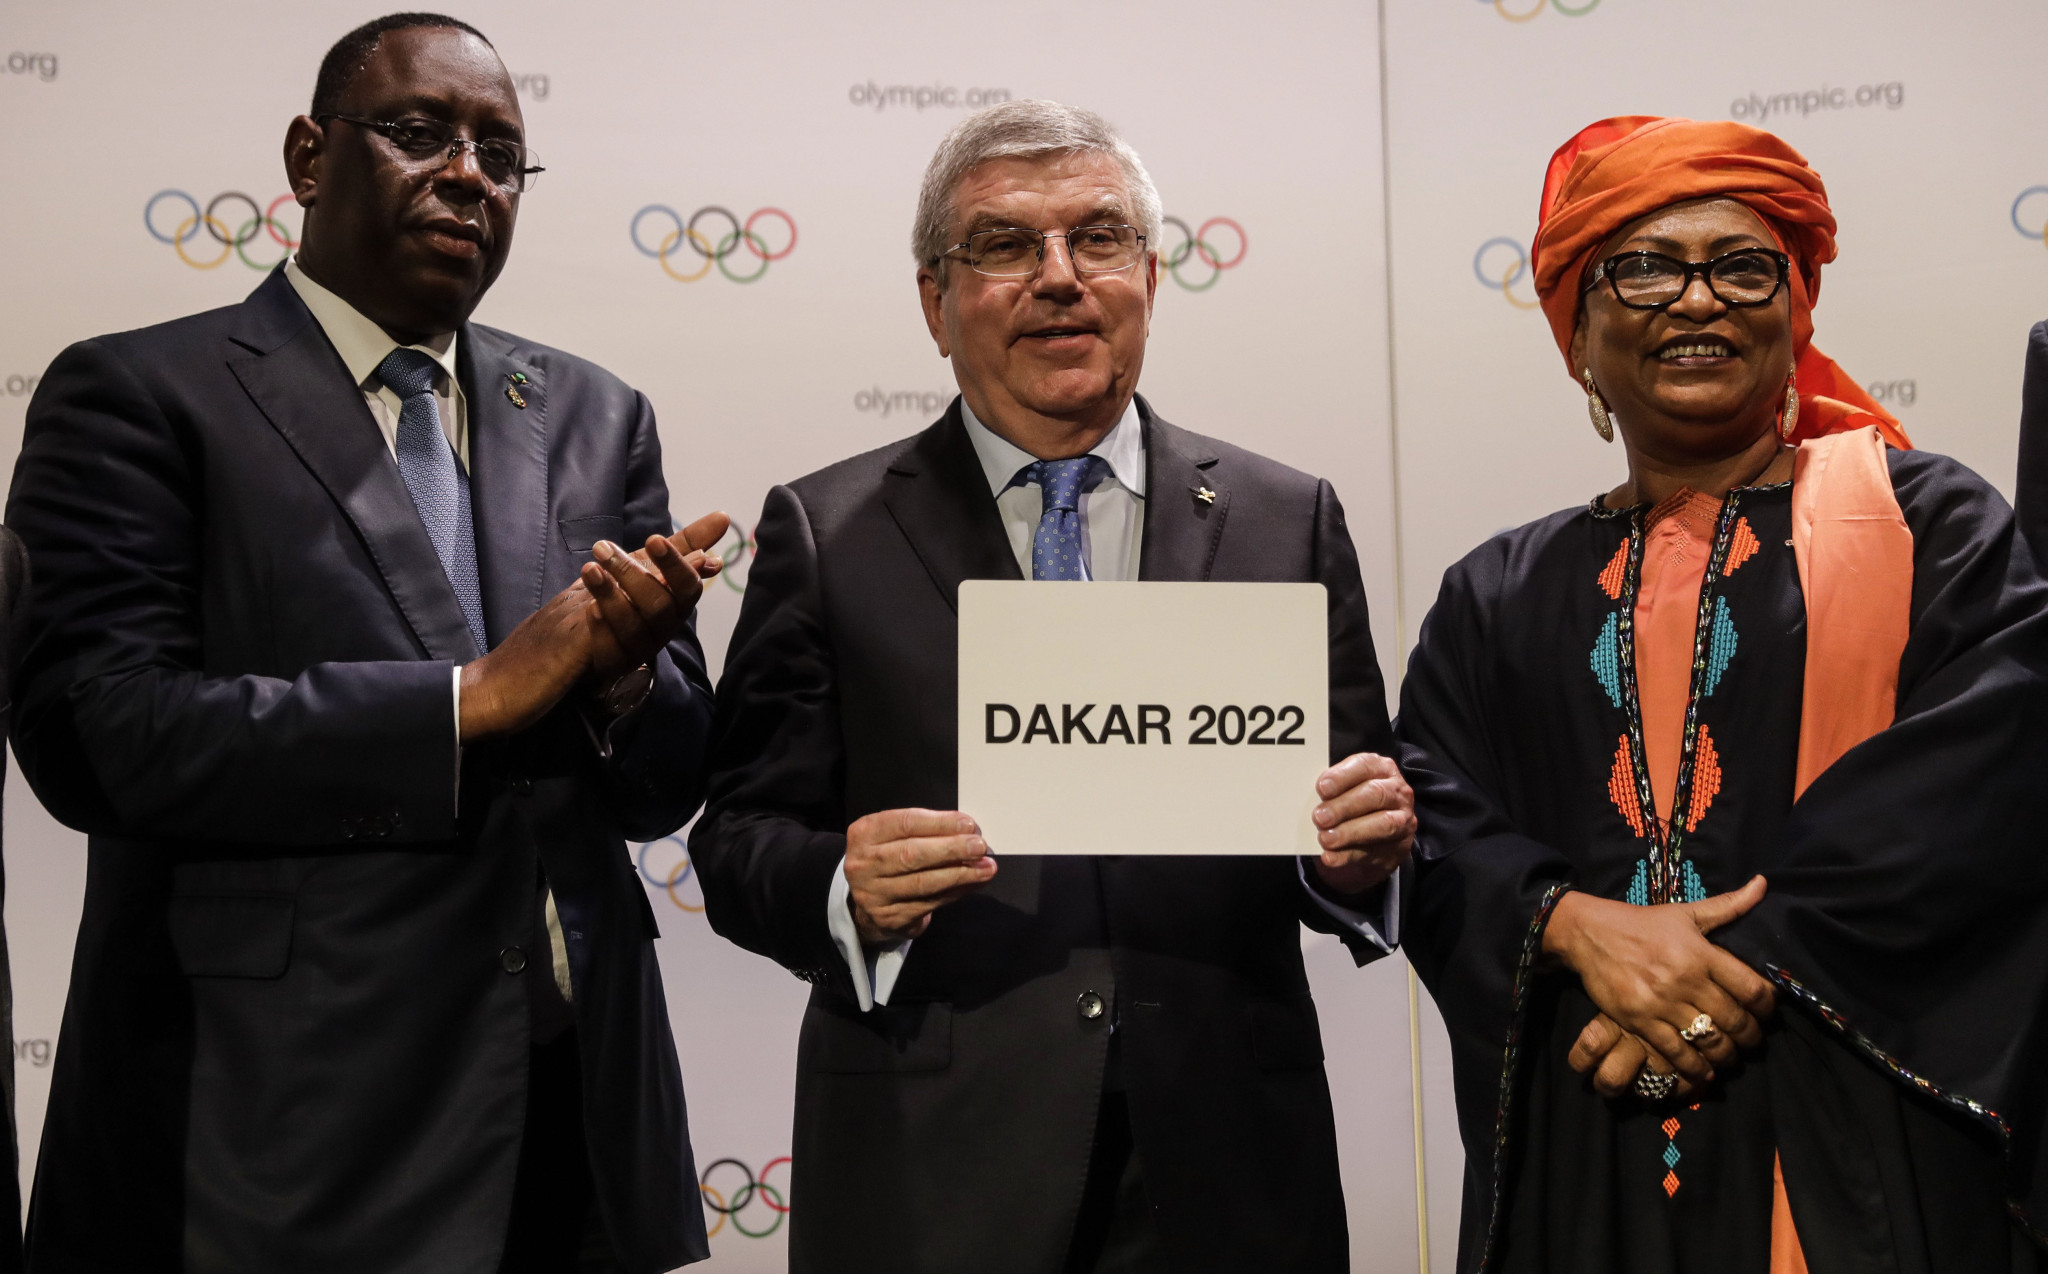 Senegal was awarded the 2022 Summer Youth Olympic Games at the IOC Session in Buenos Aires earlier this month, although details of the event still have to be finalised ©Getty Images